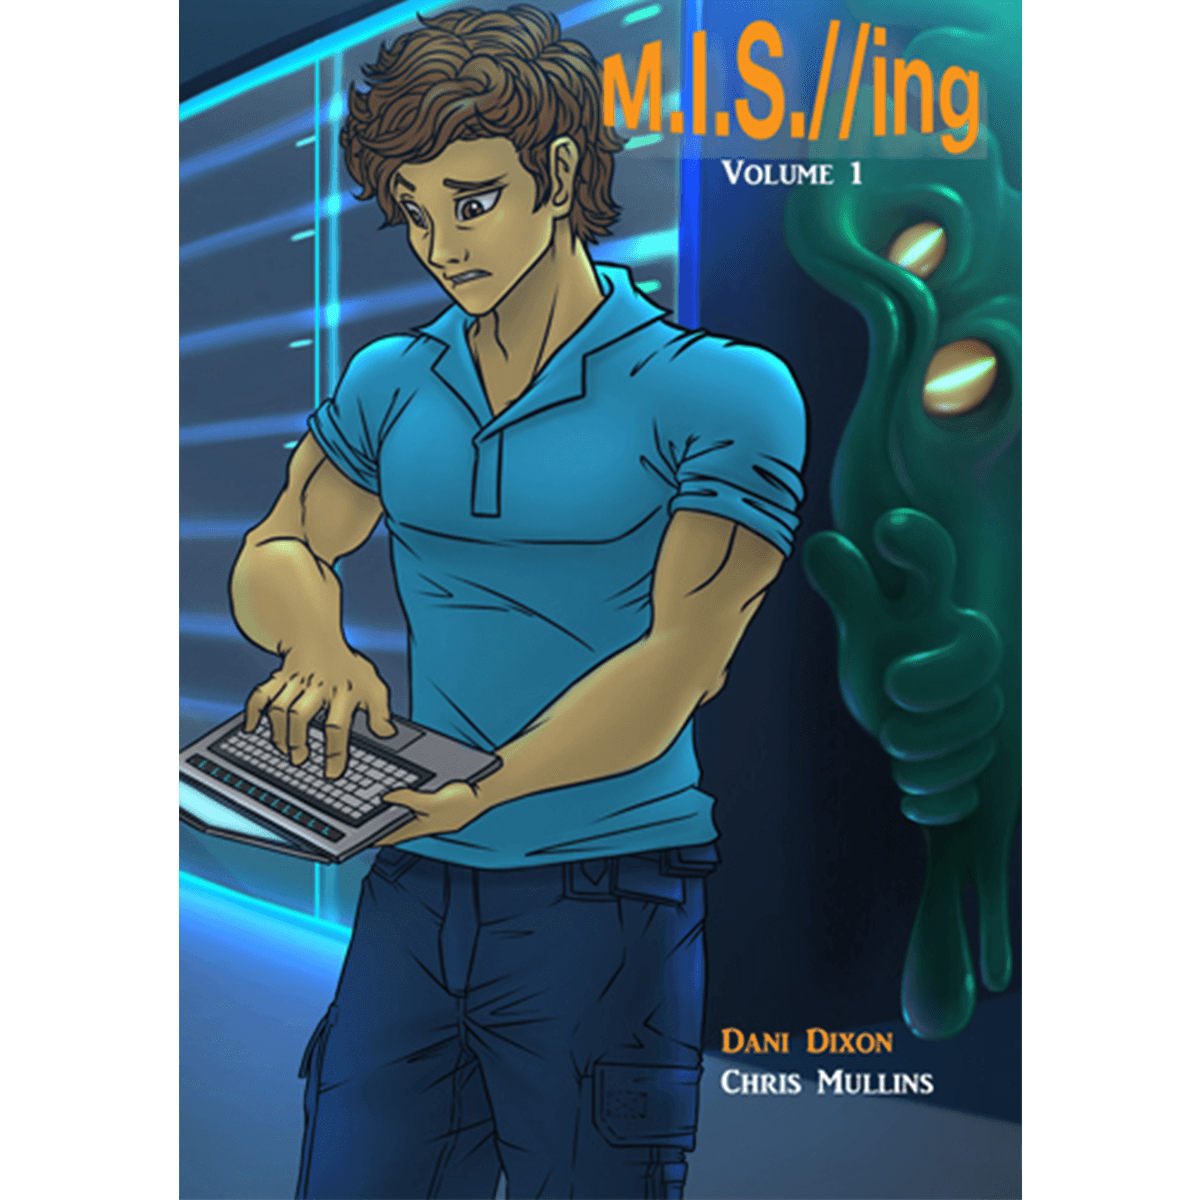 There's a reason you can never find the IT guy when you need him.  - A manga series about the epic battle between the M.I.S. Dept, cube dwellers - and aliens.